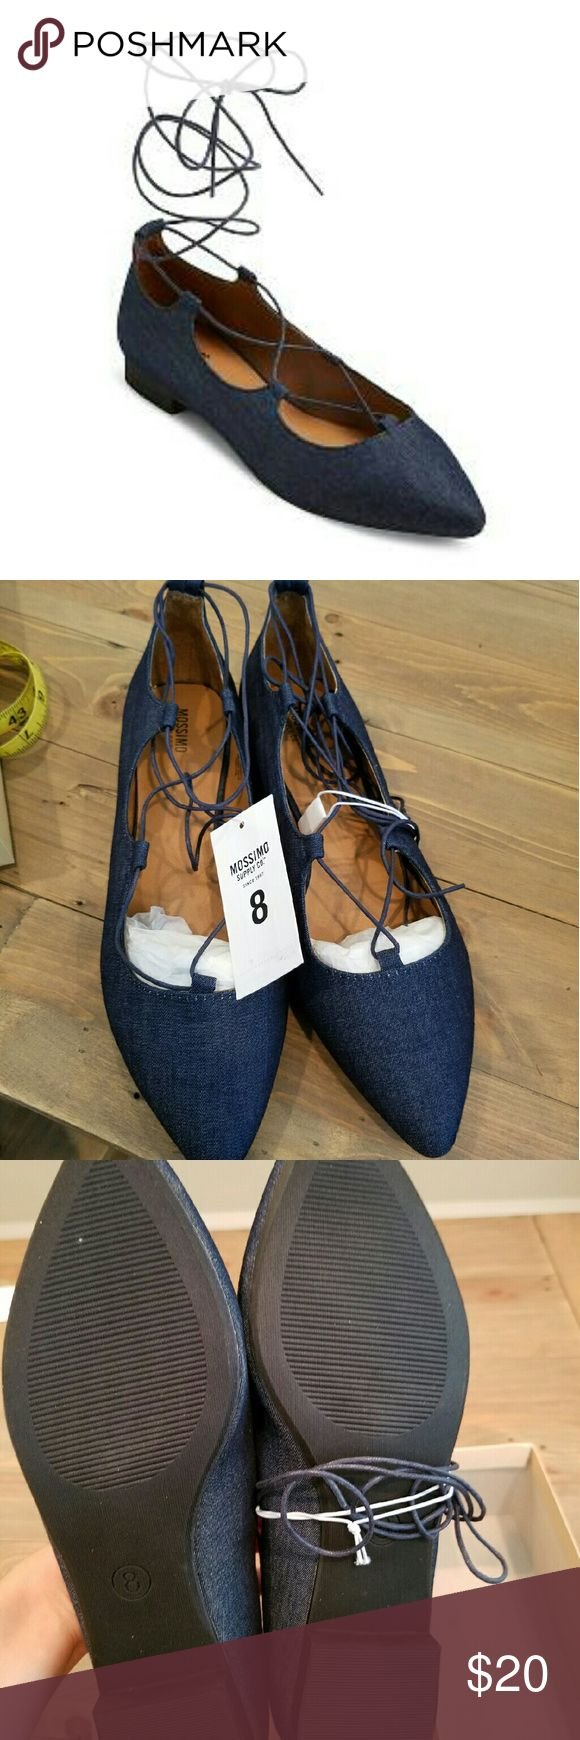 NWT! Mossimo Kady Flats in Denim size 8 Super Darling ballerina flats w/ laces. Denim. New & perfect! Early Christmas present perhaps? Mossimo Shoes Flats & Loafers